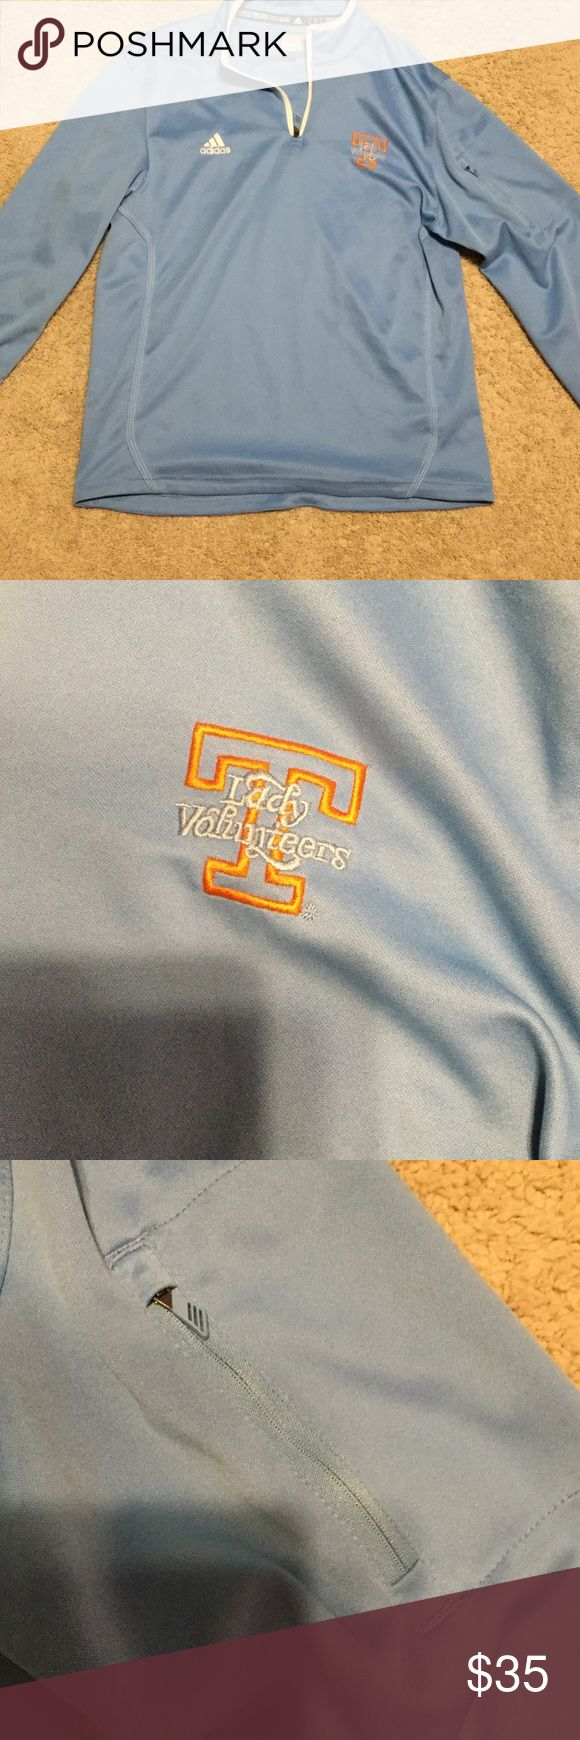 "Adidas ""Lady Volunteers"" pullover Adidas climate pullover. With lady vols logo, purchased at a UT lady vols game. In great condition. 100% polyester Adidas Tops Sweatshirts & Hoodies"